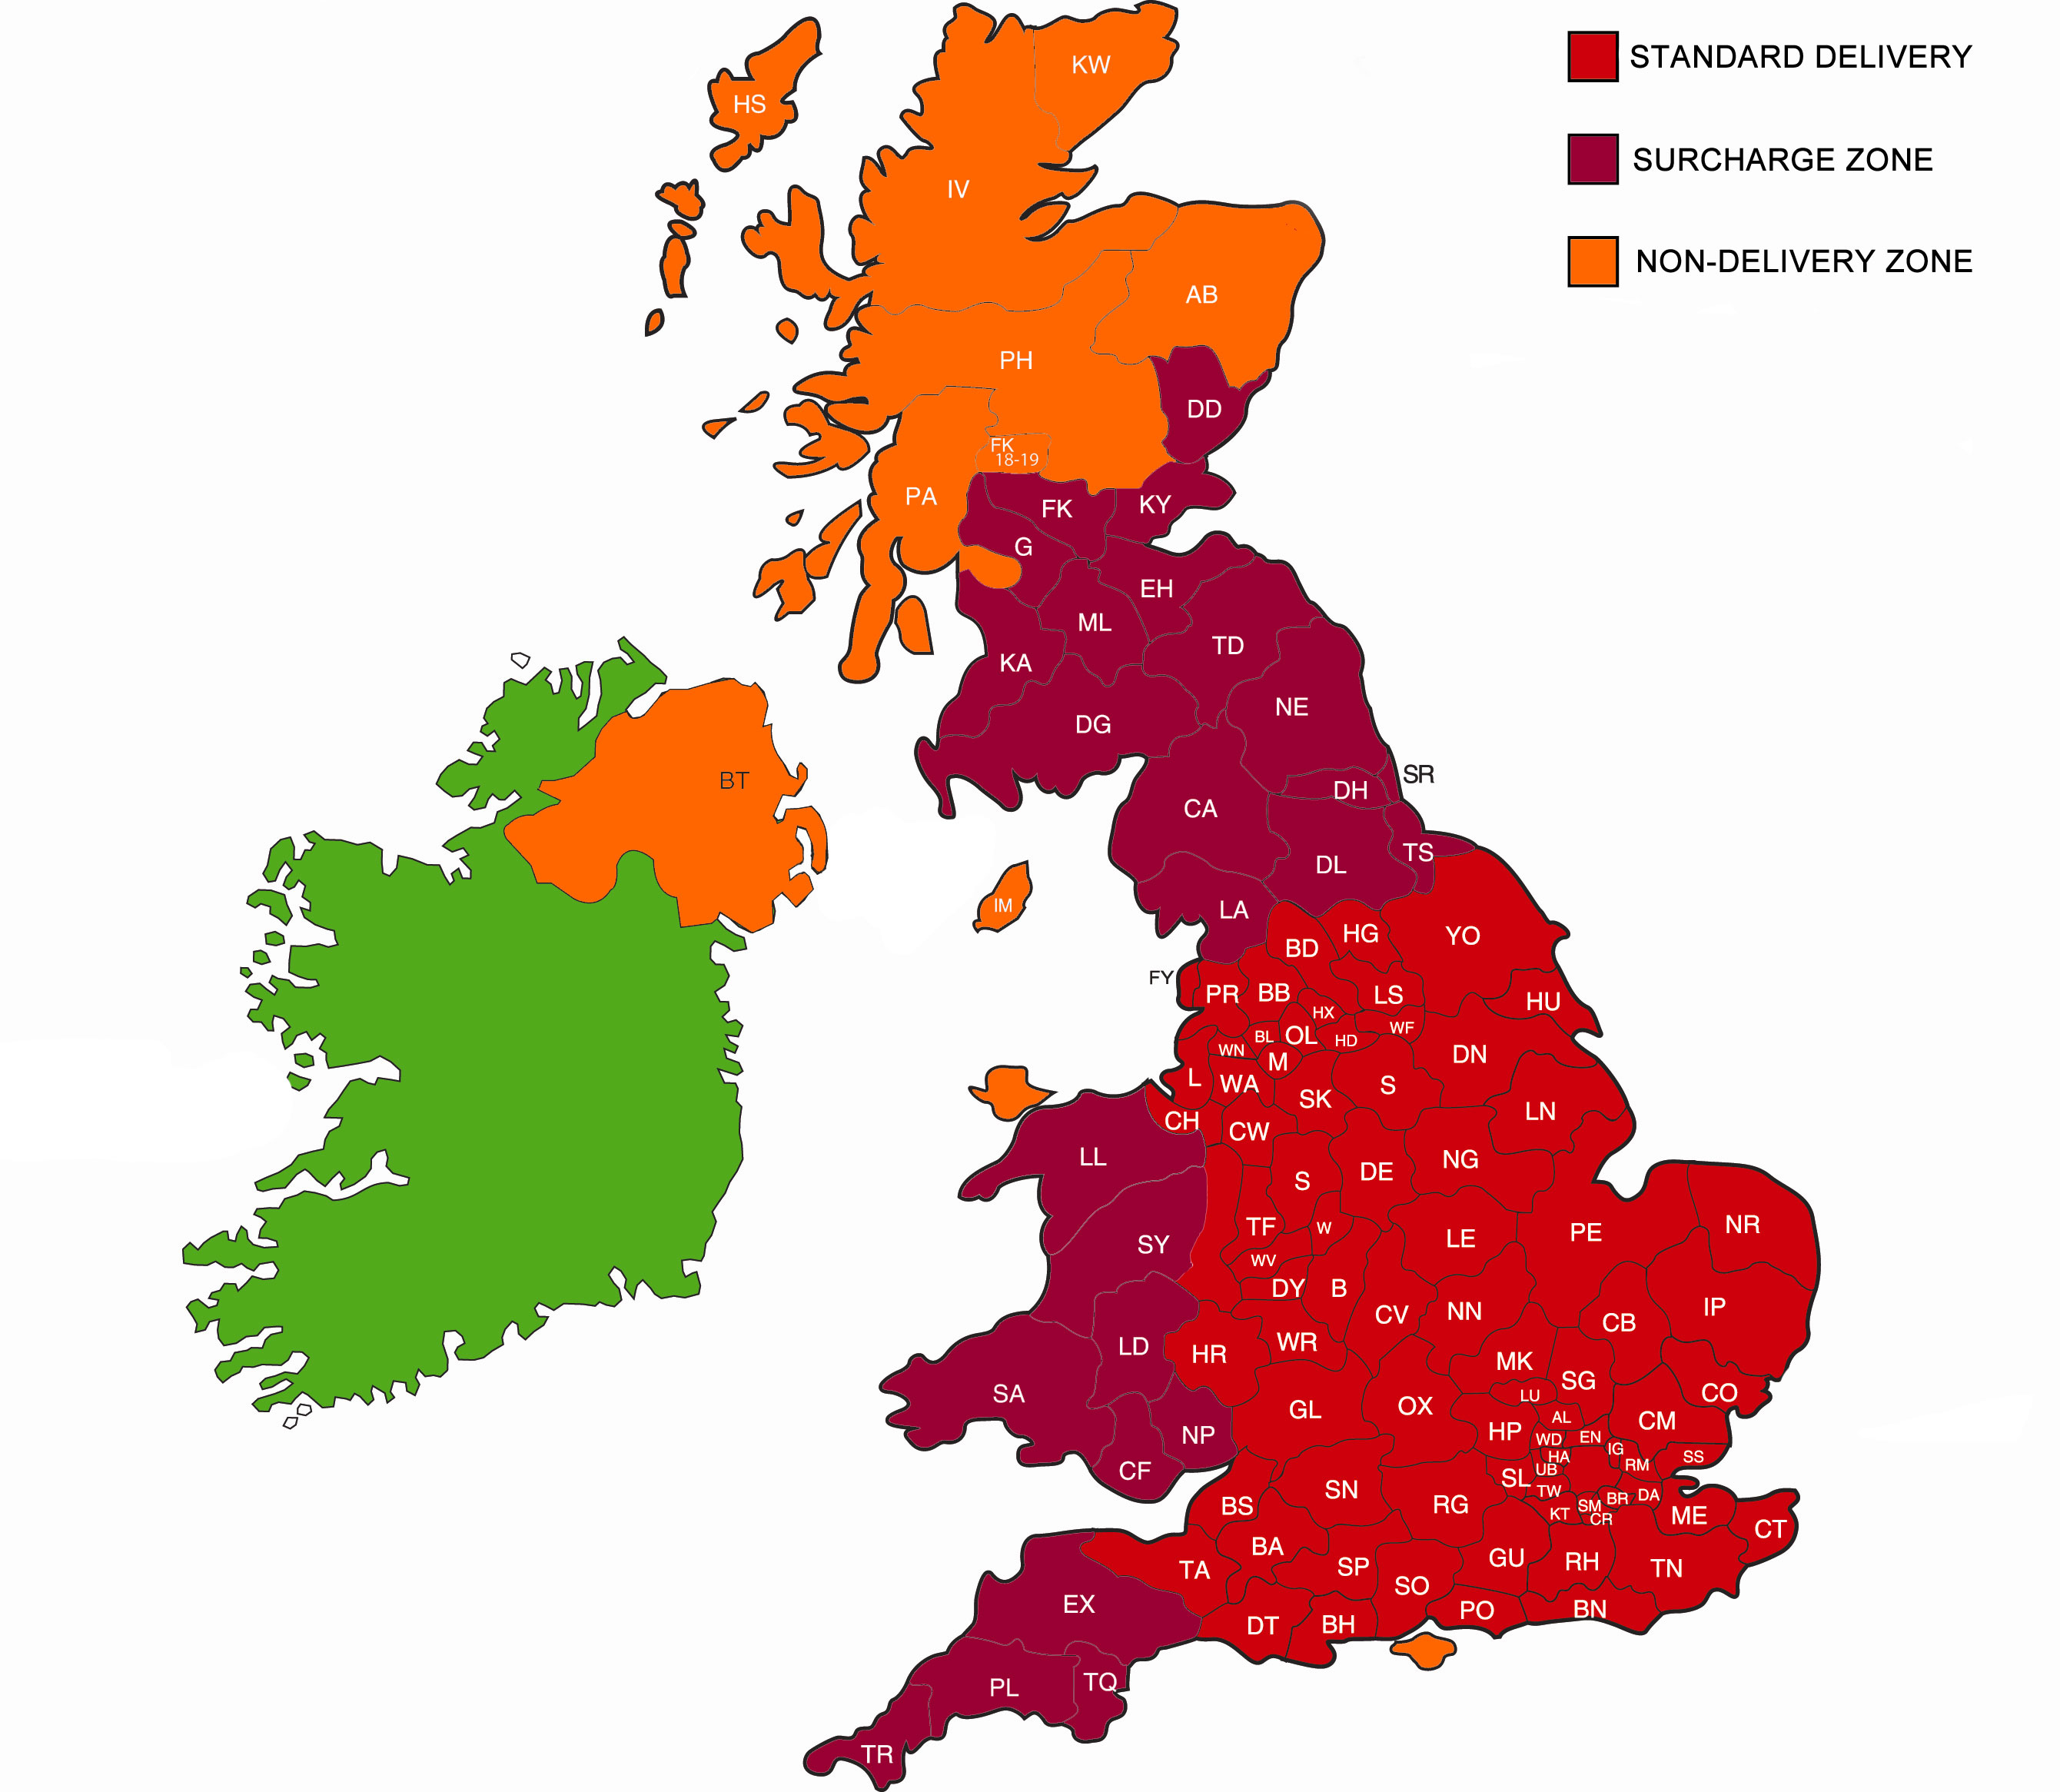 map-uk-zones-Maxxfurniture.jpg